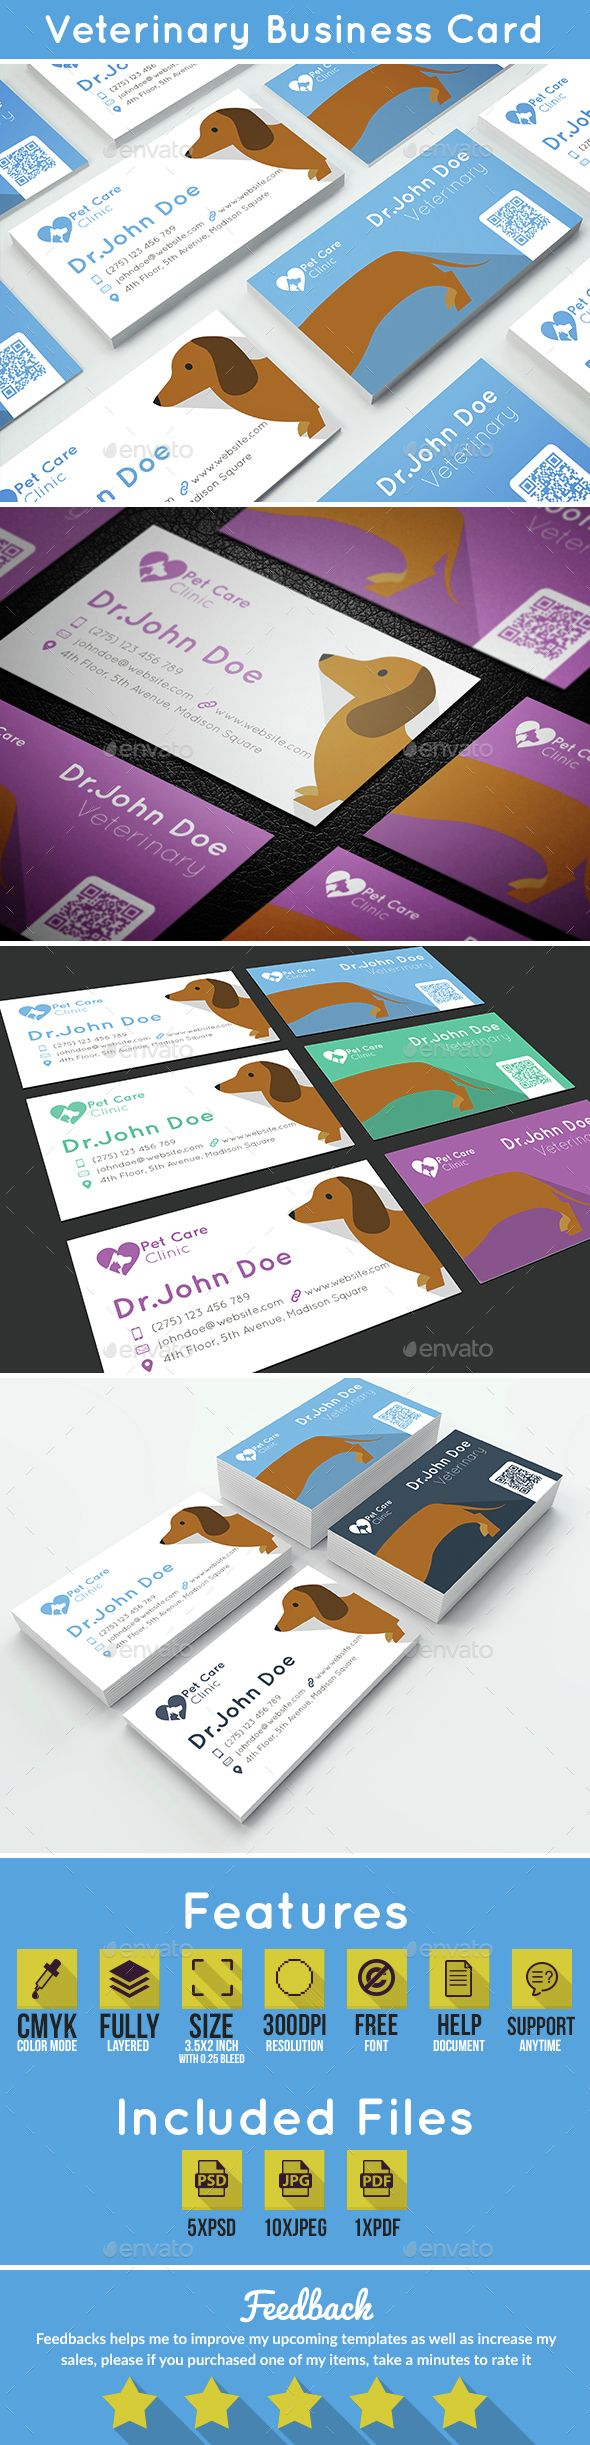 Veterinary business card veterinary business card photoshop psd care flat available here https reheart Image collections